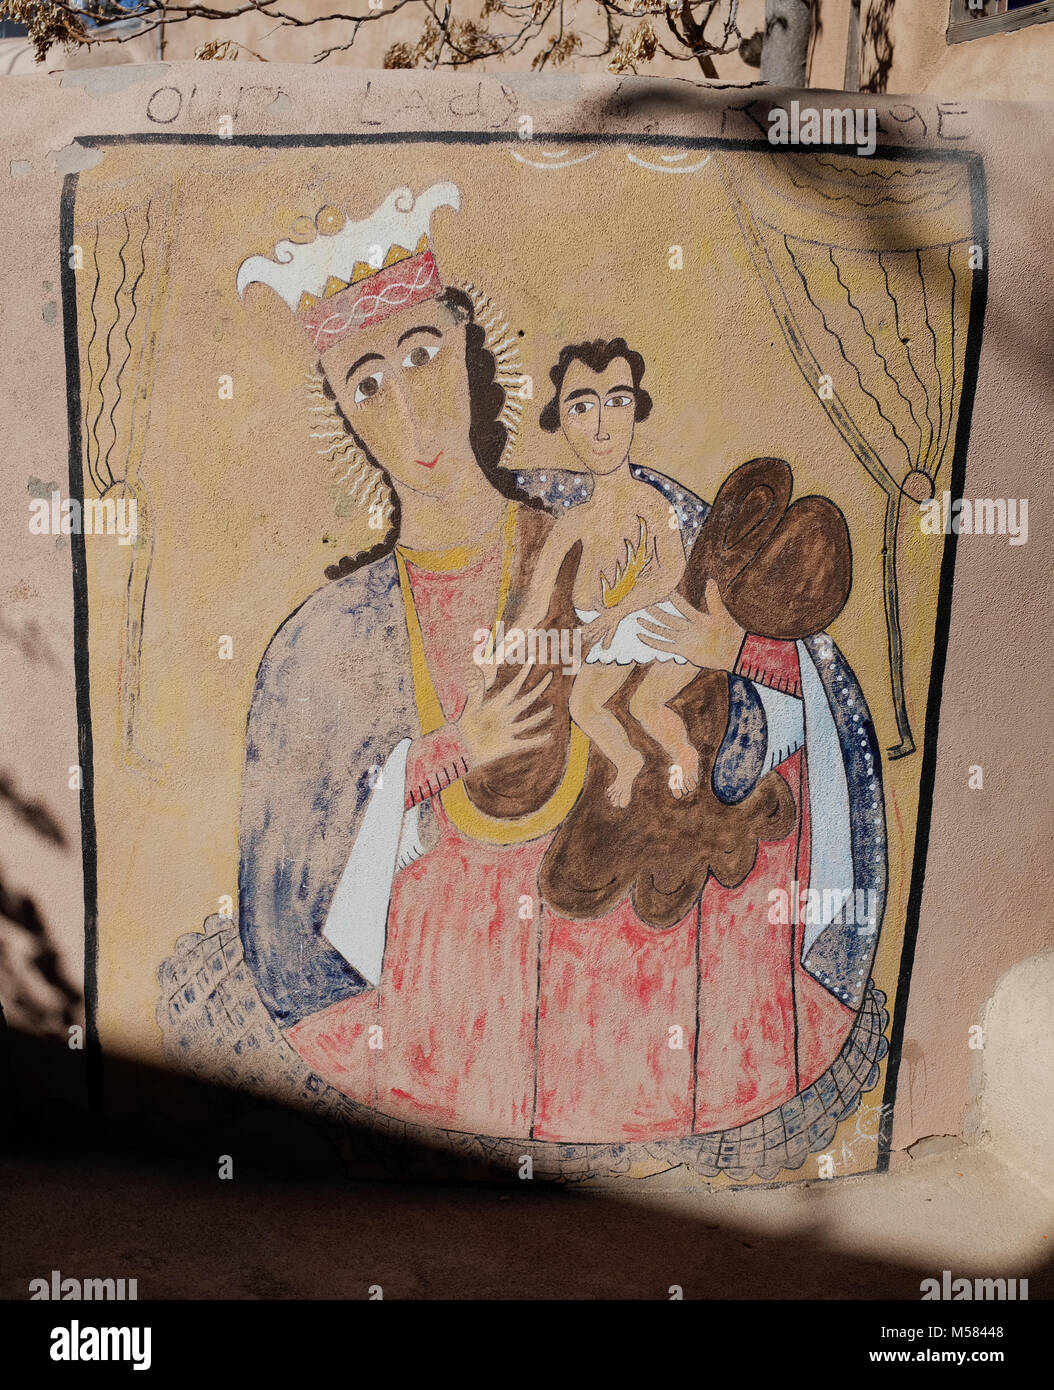 painting on stucco 'Our Lady of Refuge' - Stock Image